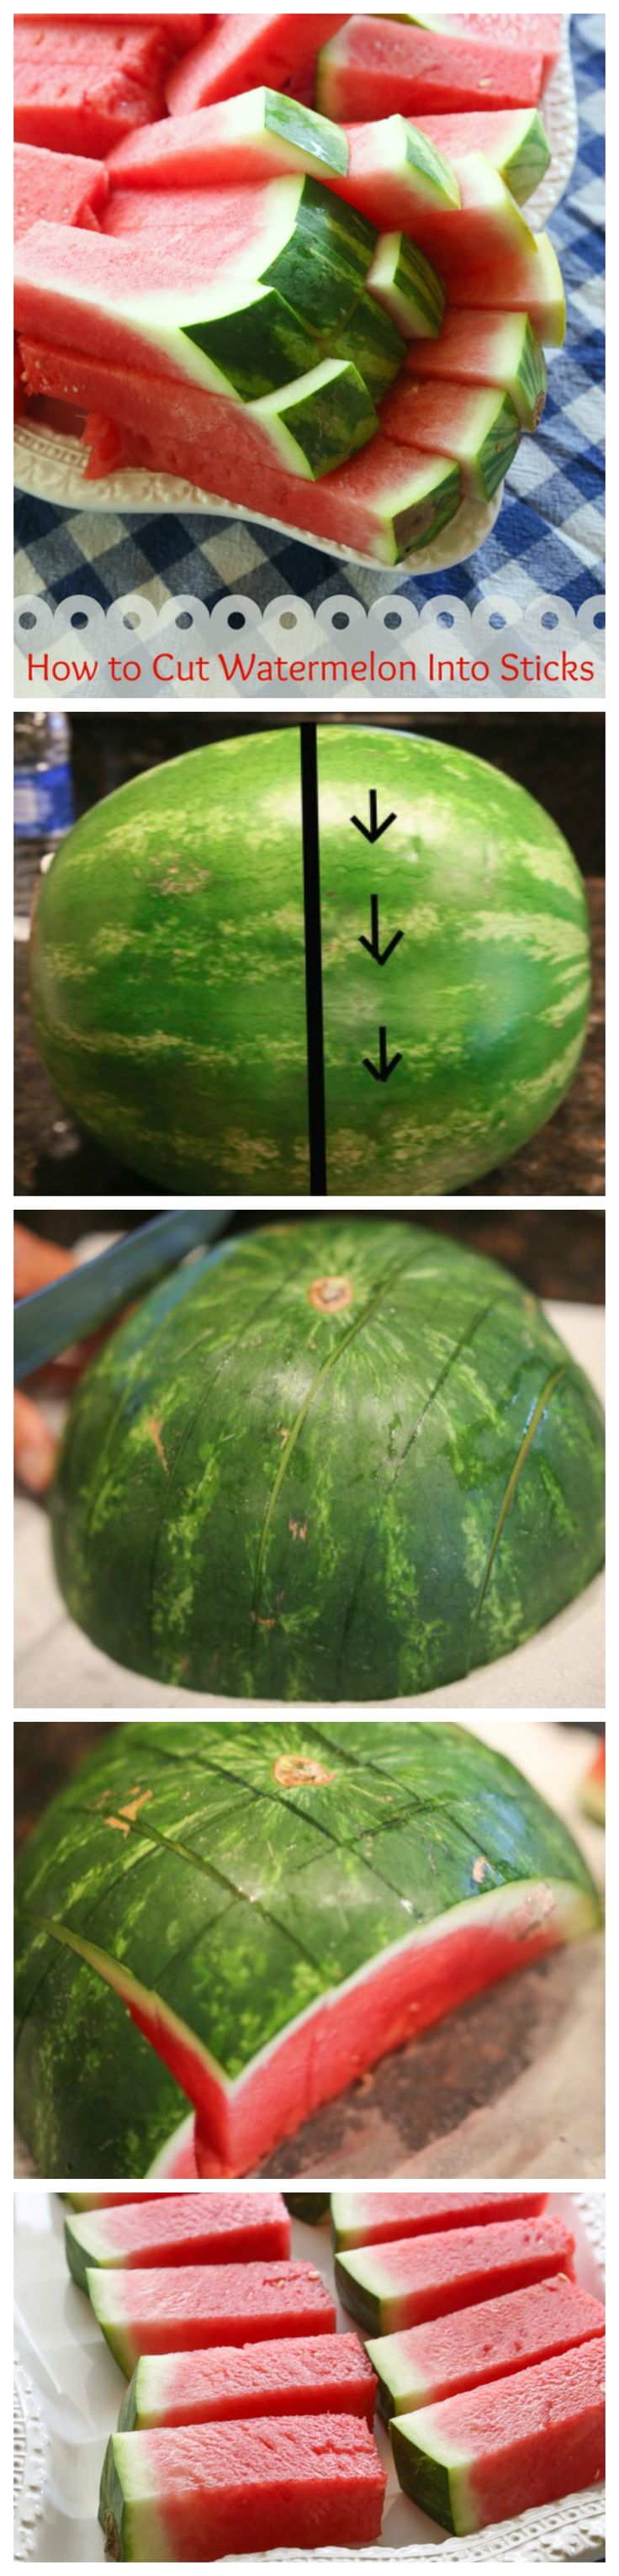 How to Cut a Watermelon into Sticks ~ Cutting it this way makes it easy for little ones to manage and great for potlucks.